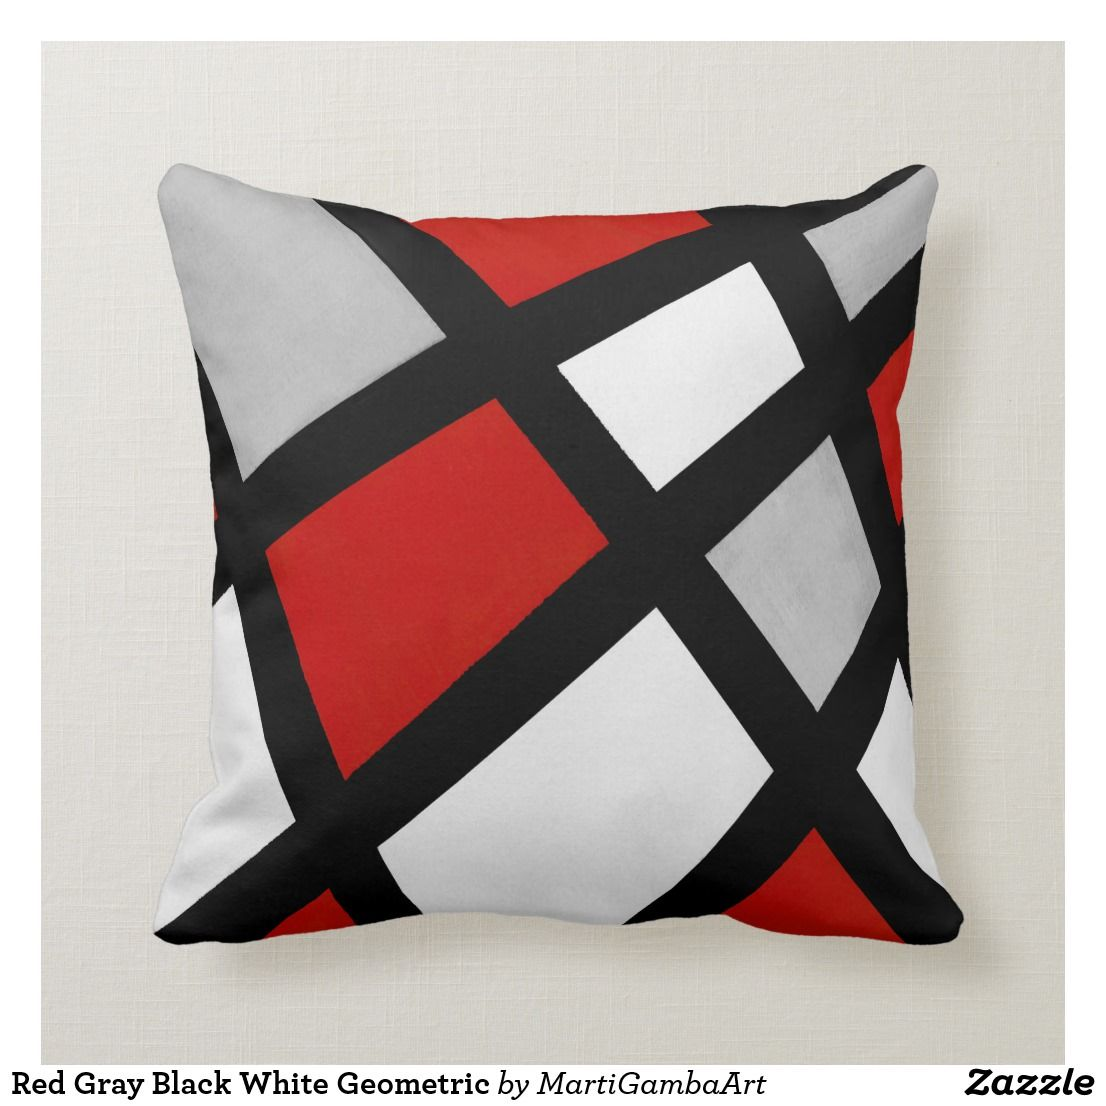 Red Gray Black White Geometric Throw Pillow Zazzle Com Geometric Throw Pillows Throw Pillows Geometric Throws